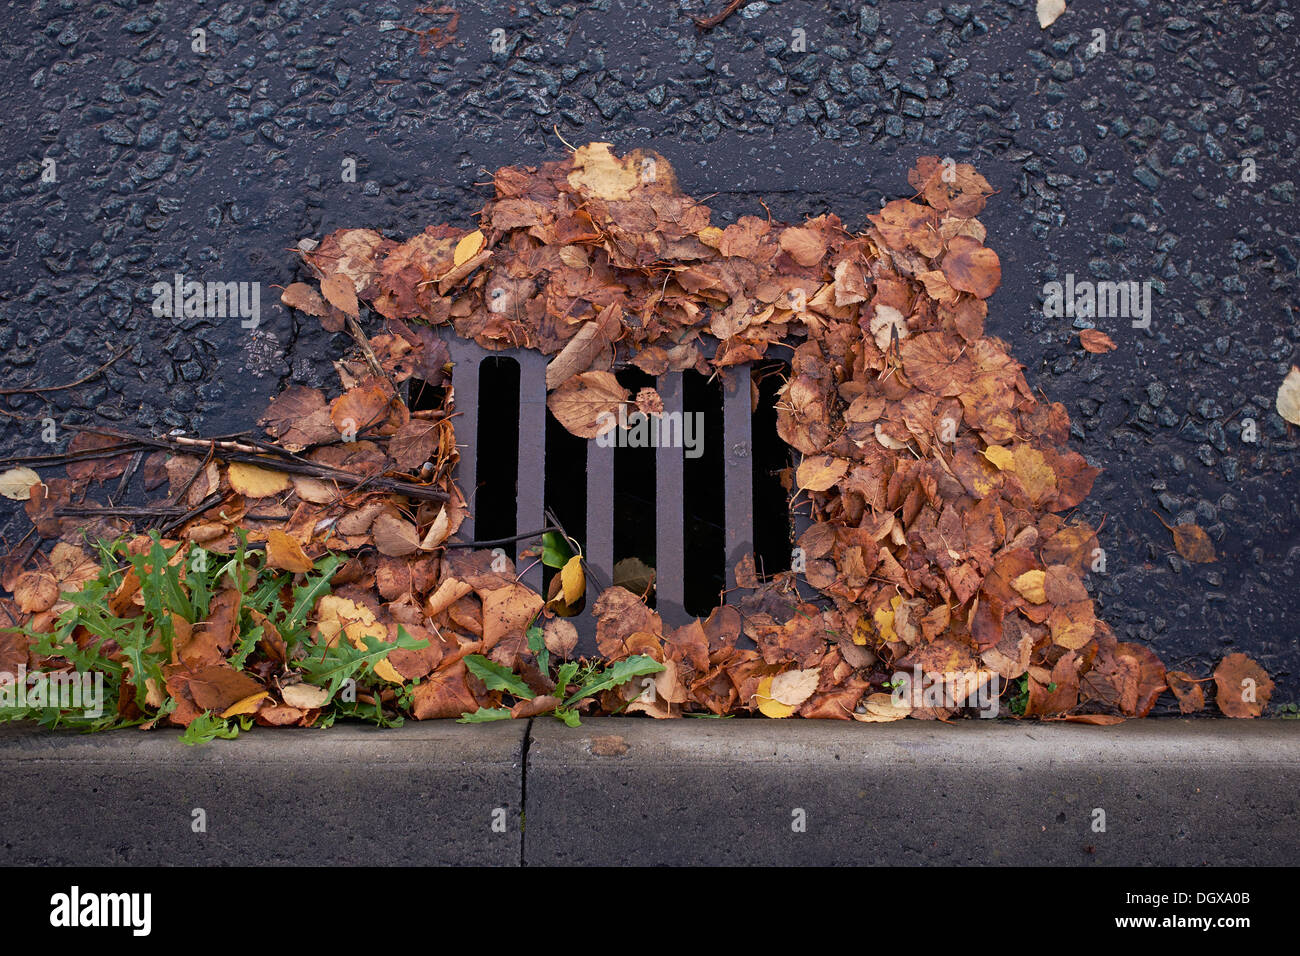 Roadside drain covered in autumn leaves - Stock Image